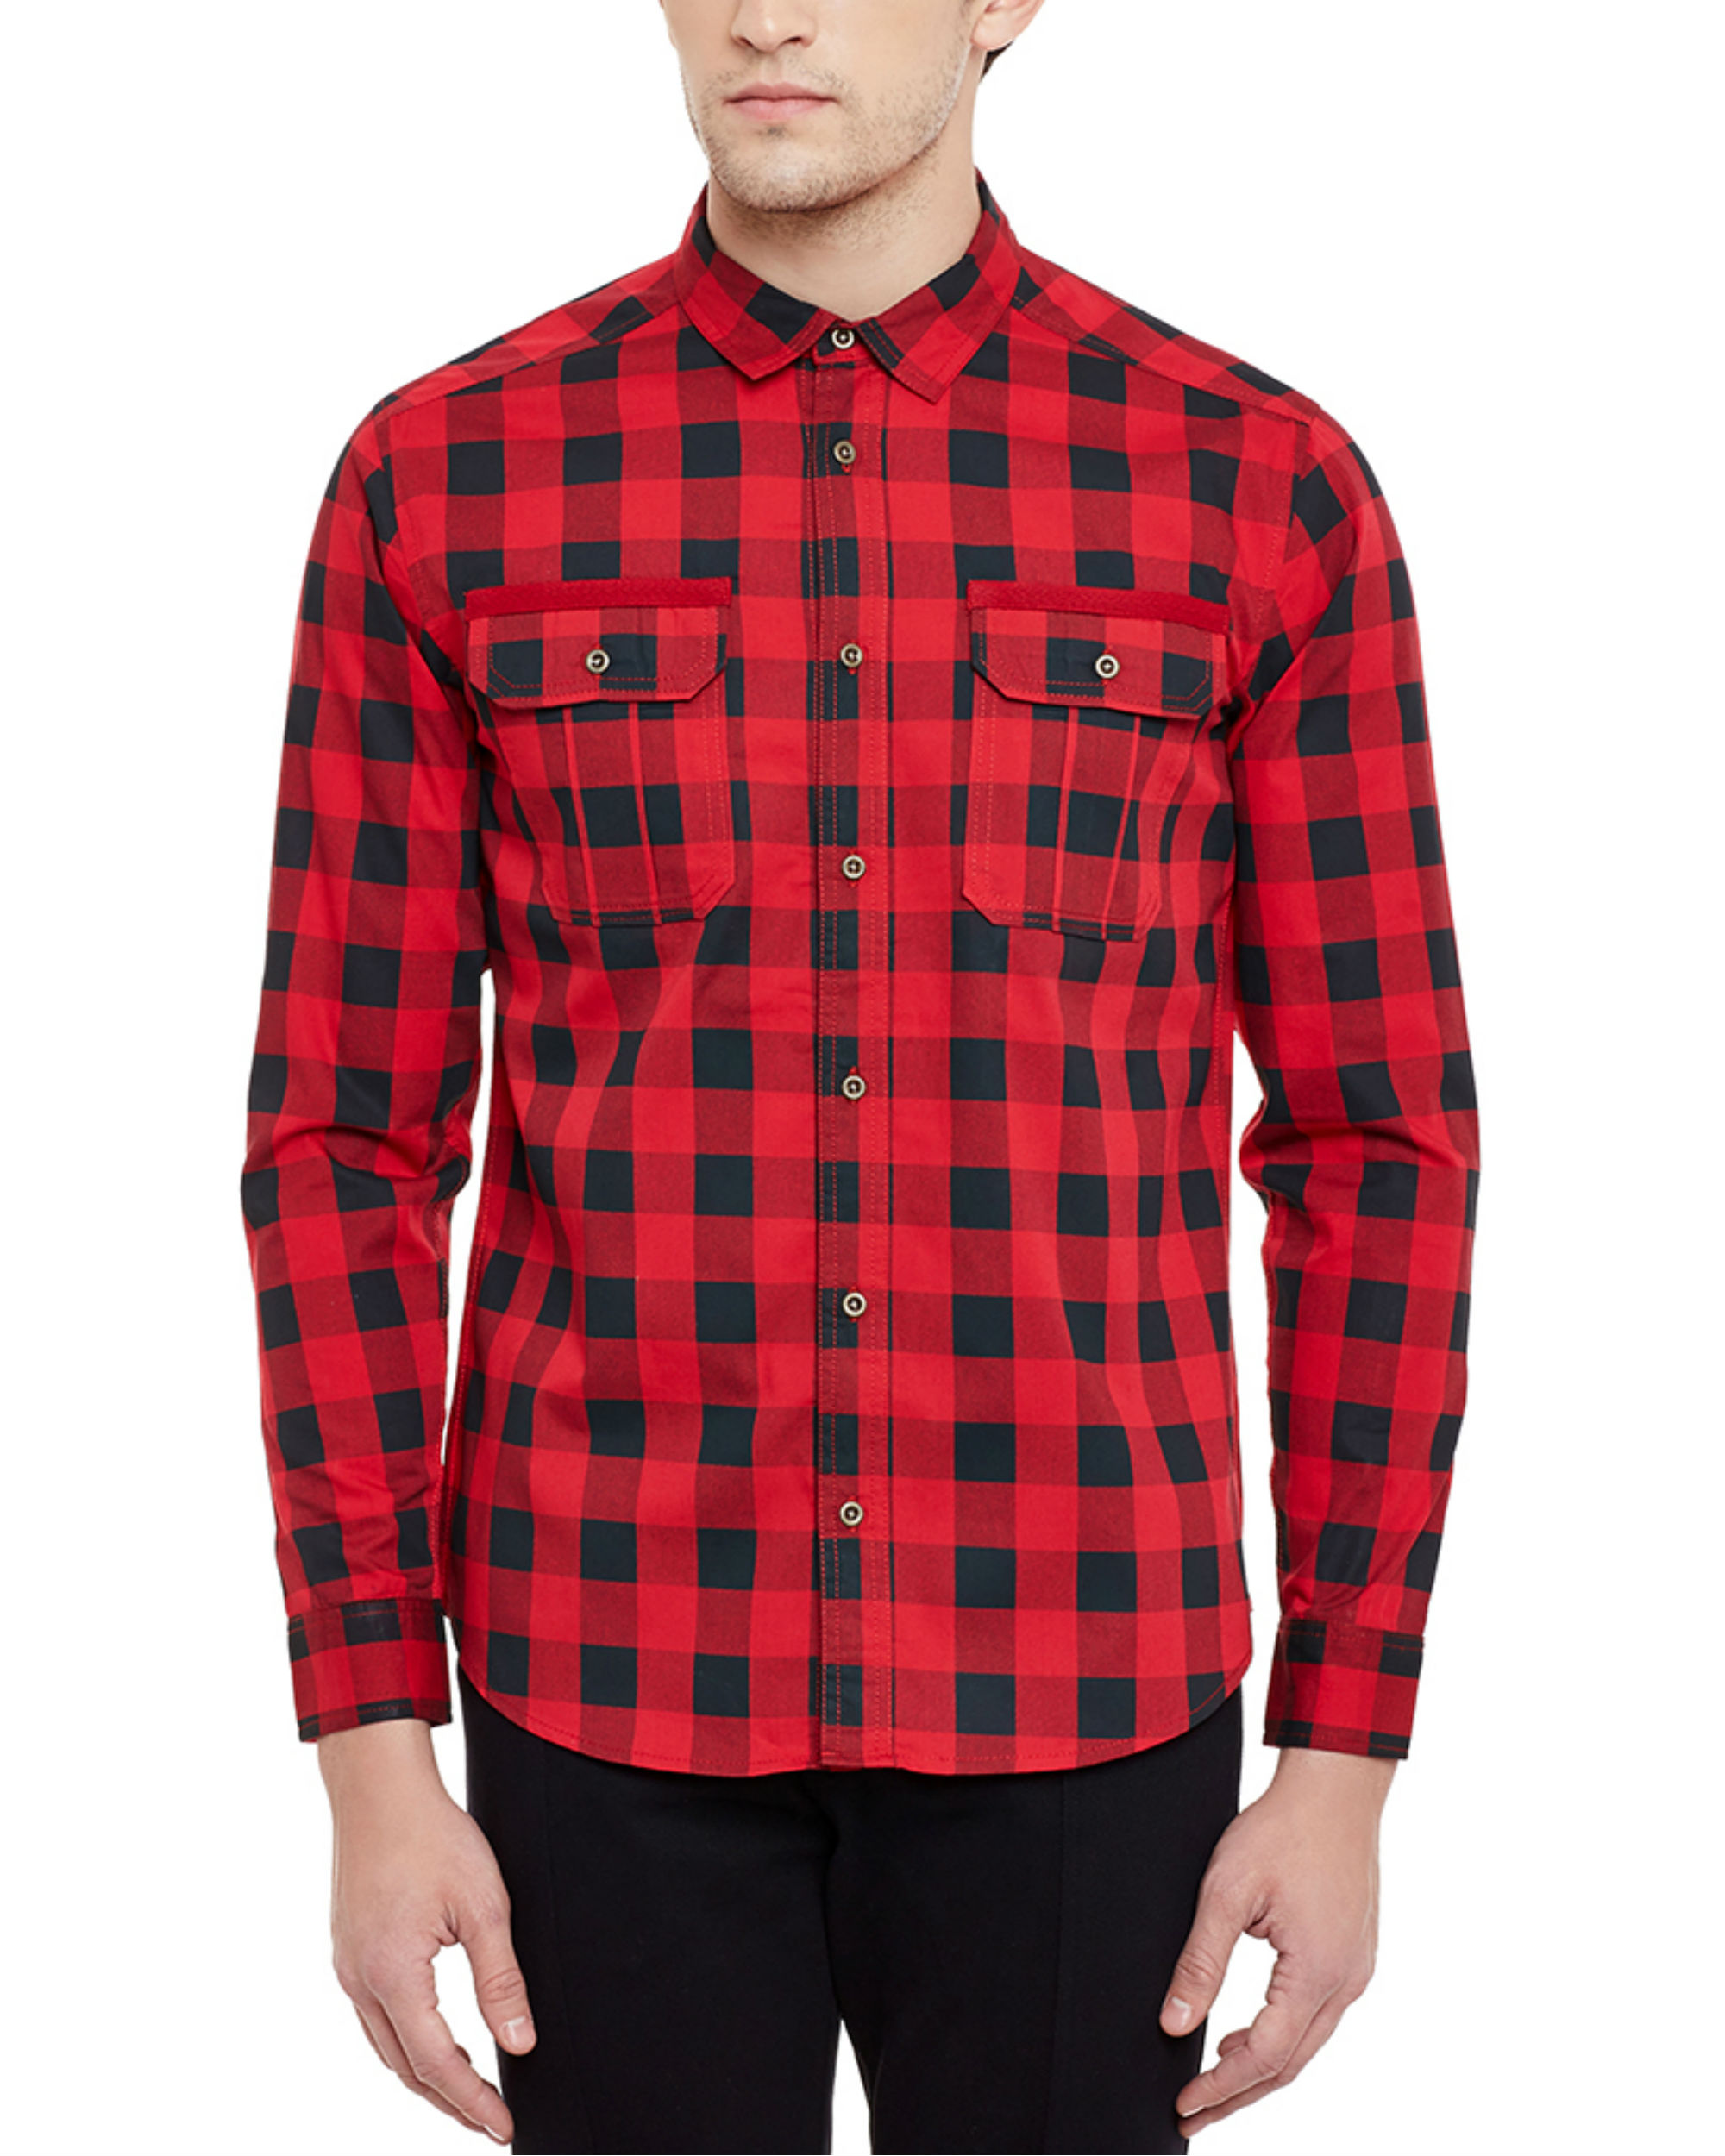 Box check military shirt